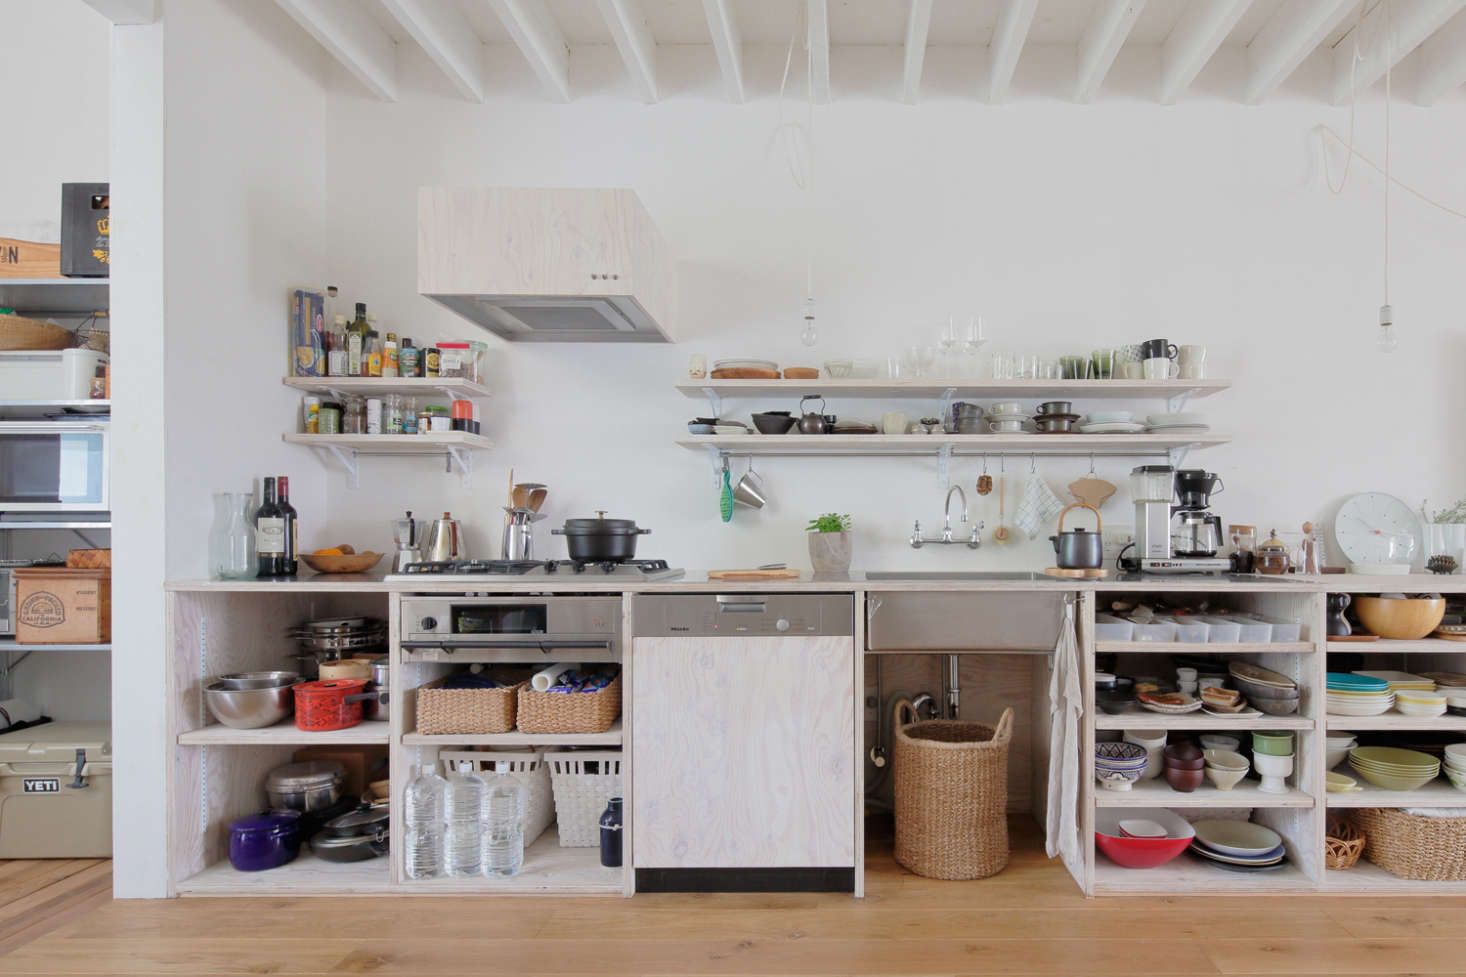 The open kitchen is composed of larch plywood finished with translucent whiteOsmo Wood Wax—a combination also used for the wall storage, vent cover, and Miele dishwasher panel. The counter is stainless steel and under the cooktop is a shallow fish grill.